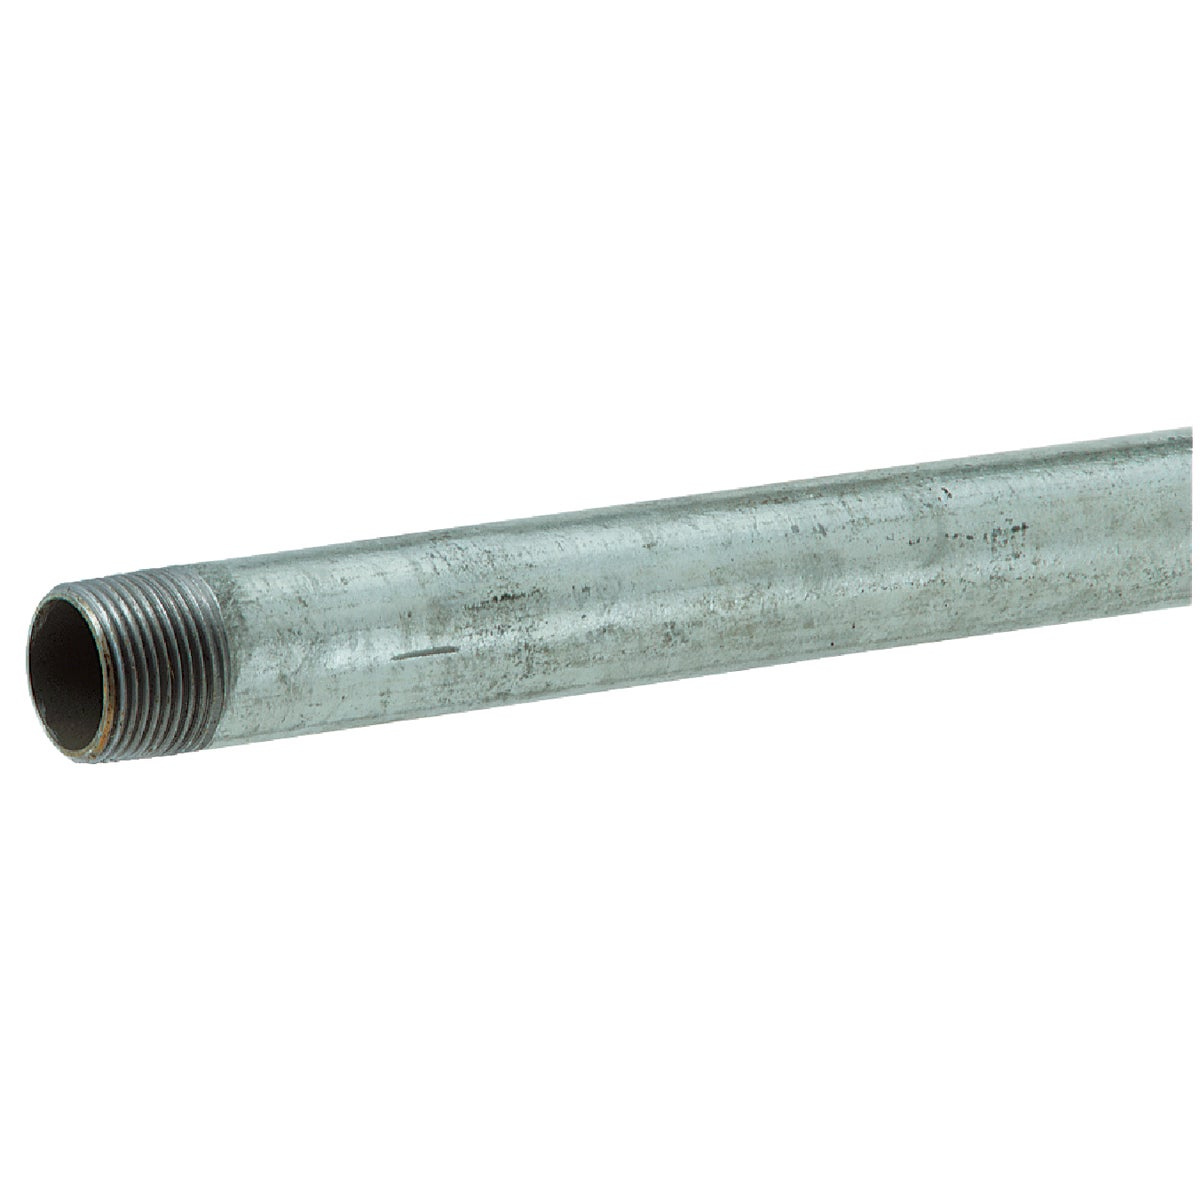 1-1/4X36GALV RDI-CT PIPE